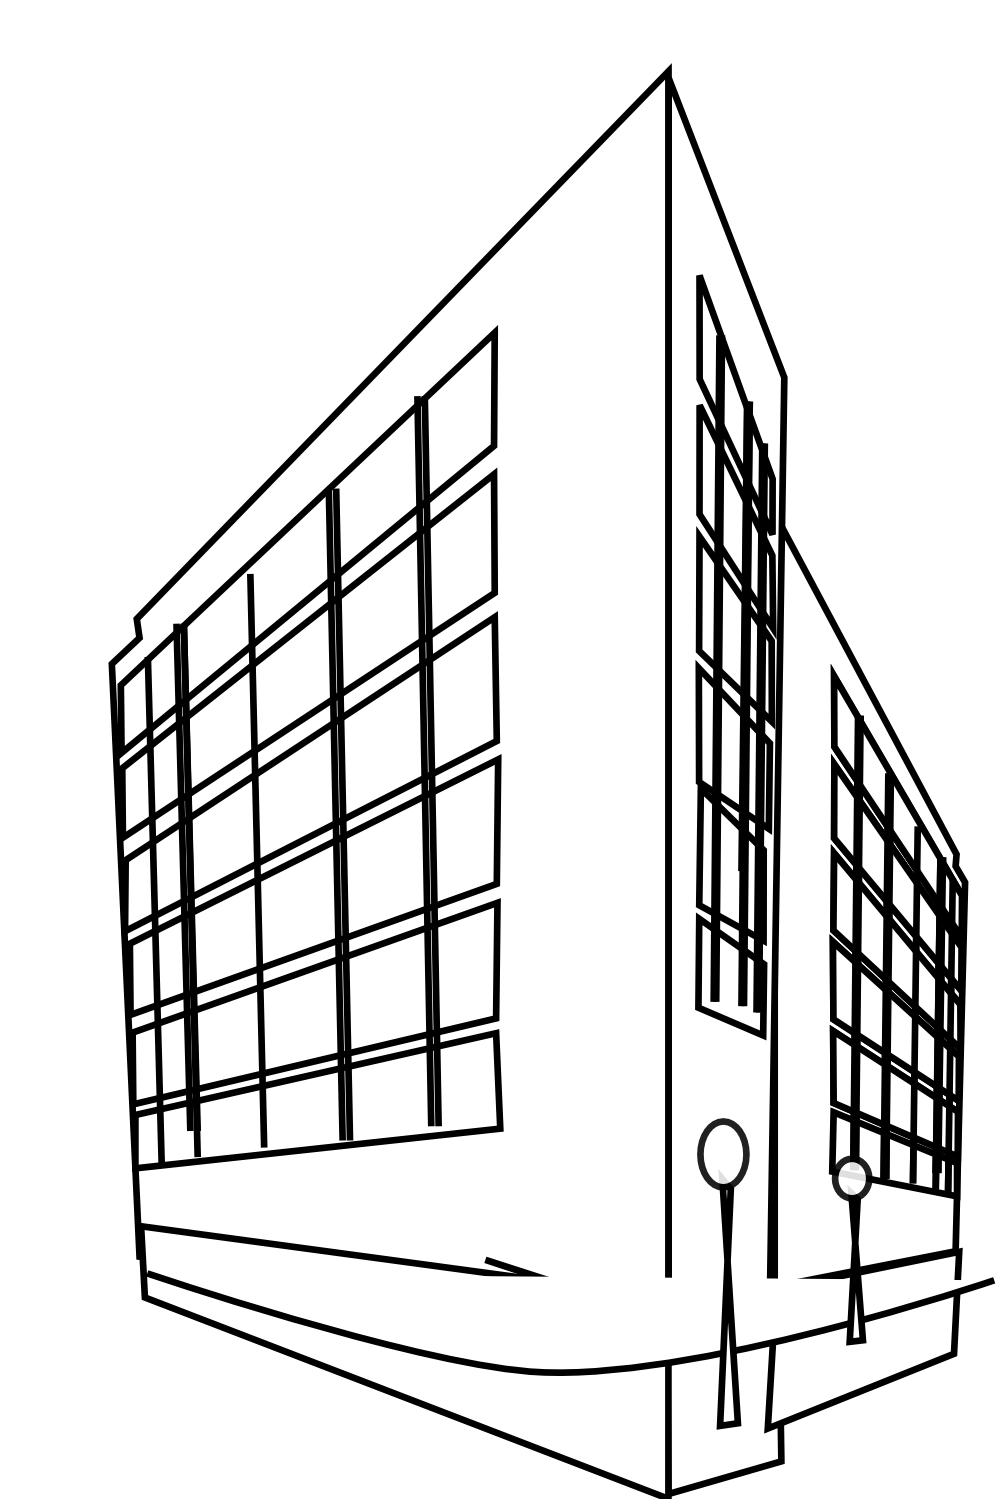 White building clipart - Clipground